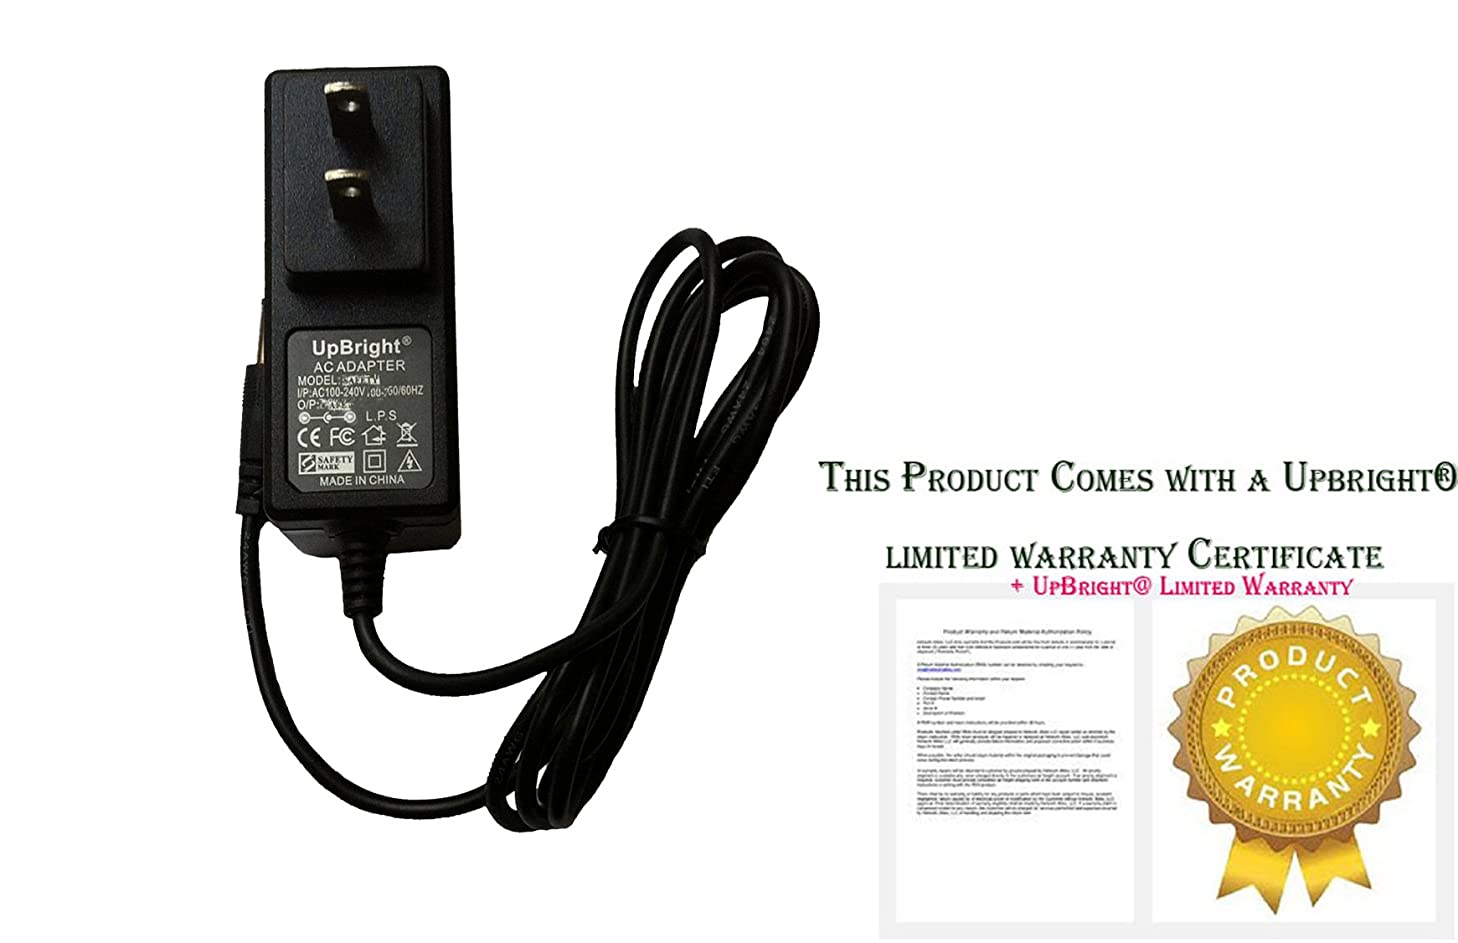 UpBright NEW Global AC / DC Adapter For SainSonic SS-630 AV Wireless Audio Video Transmitter & Receiver Power Supply Cord Cable PS Wall Home Charger Input: 100 - 240 VAC 50/60Hz Worldwide Voltage Use Mains PSU